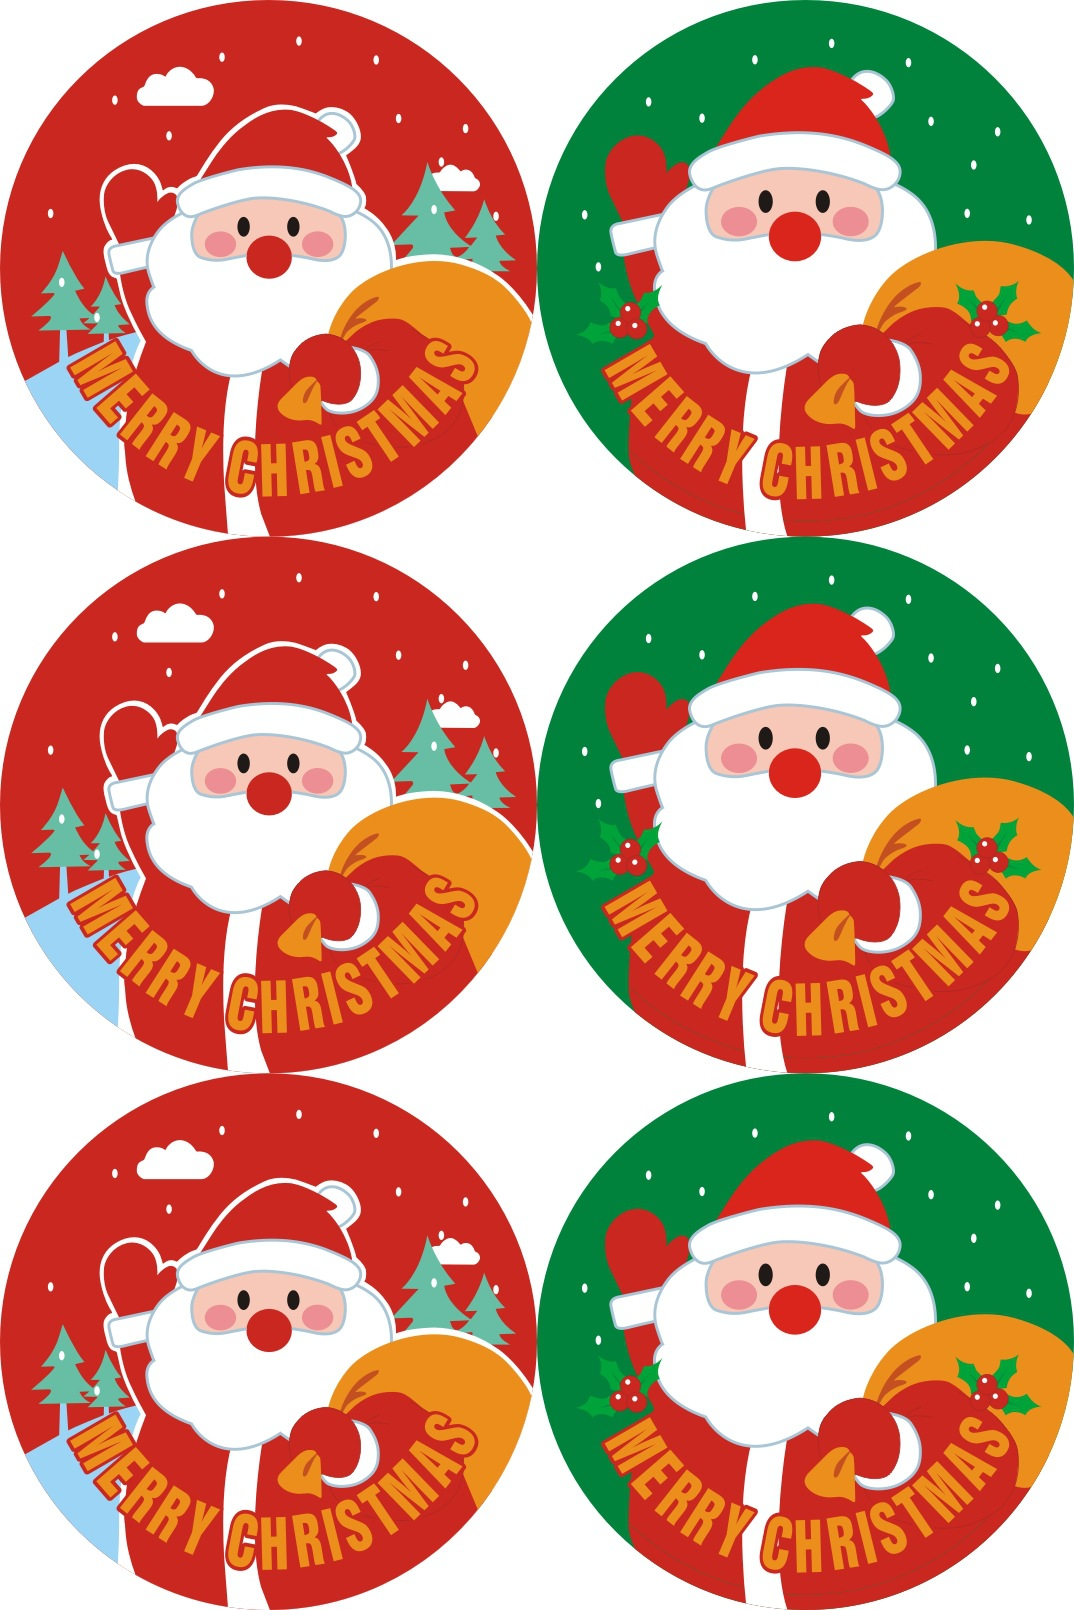 Compare Prices on Santa Gift Labels- Online Shopping/Buy Low Price ...